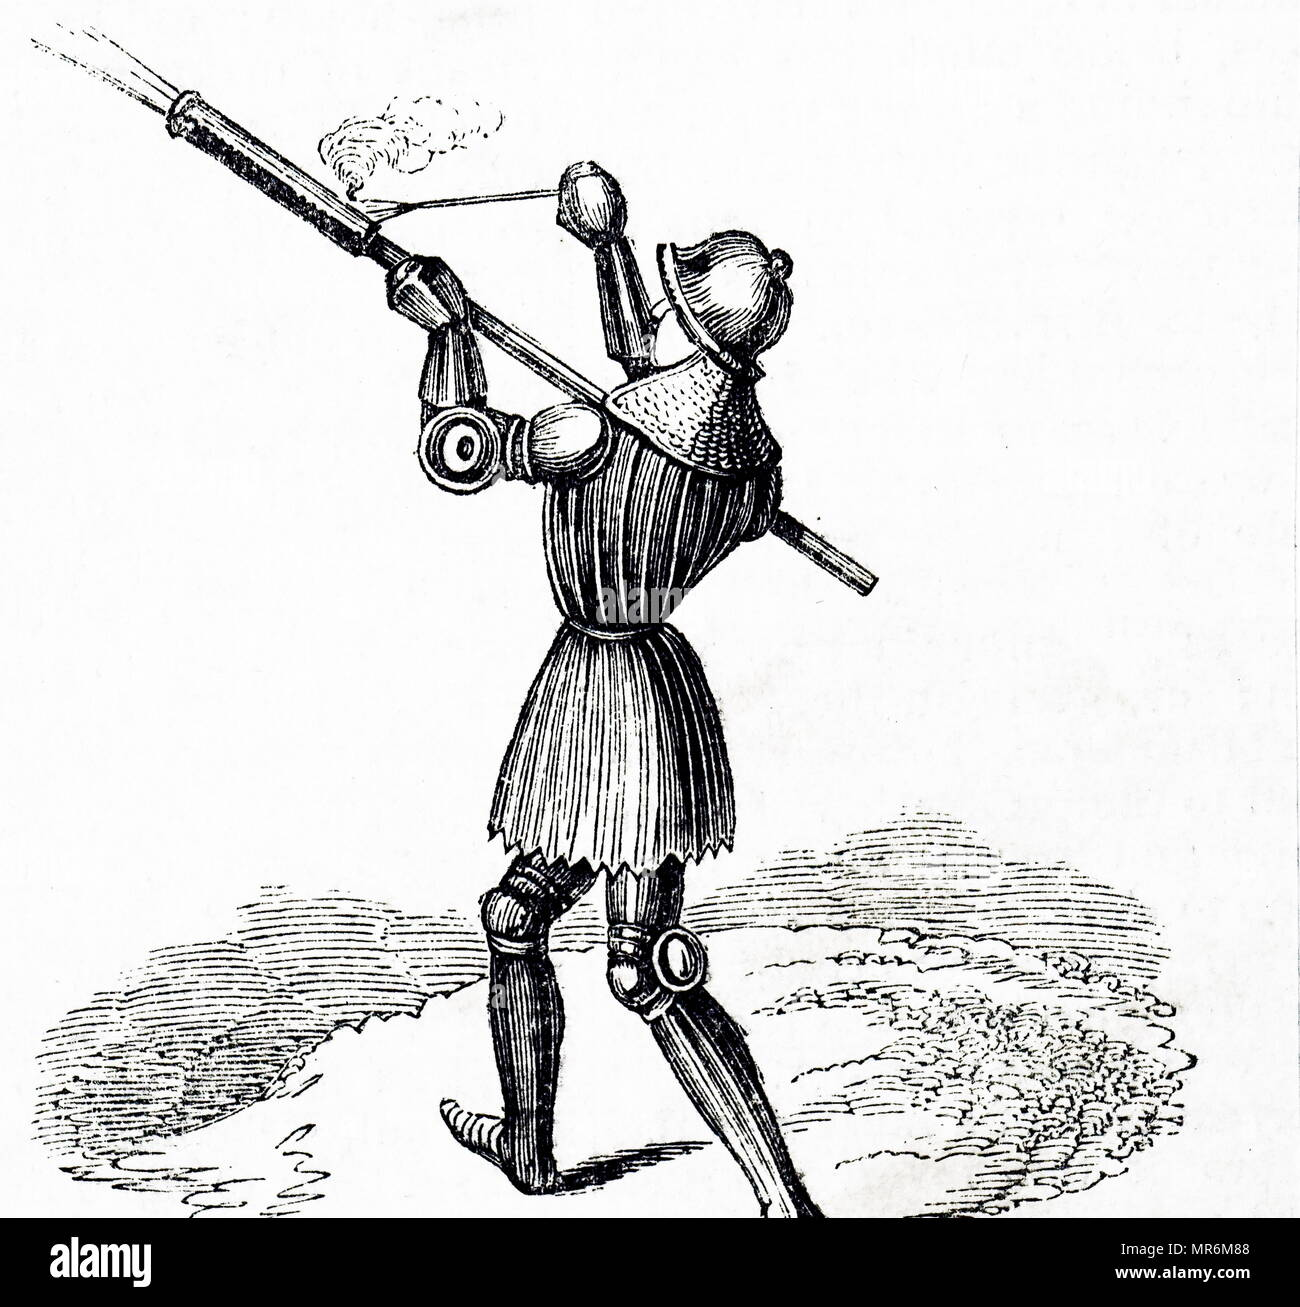 Woodcut engraving depicting a bâton à feu a type of hand cannon developed in the 14th century in Western Europe. Dated 15th century - Stock Image